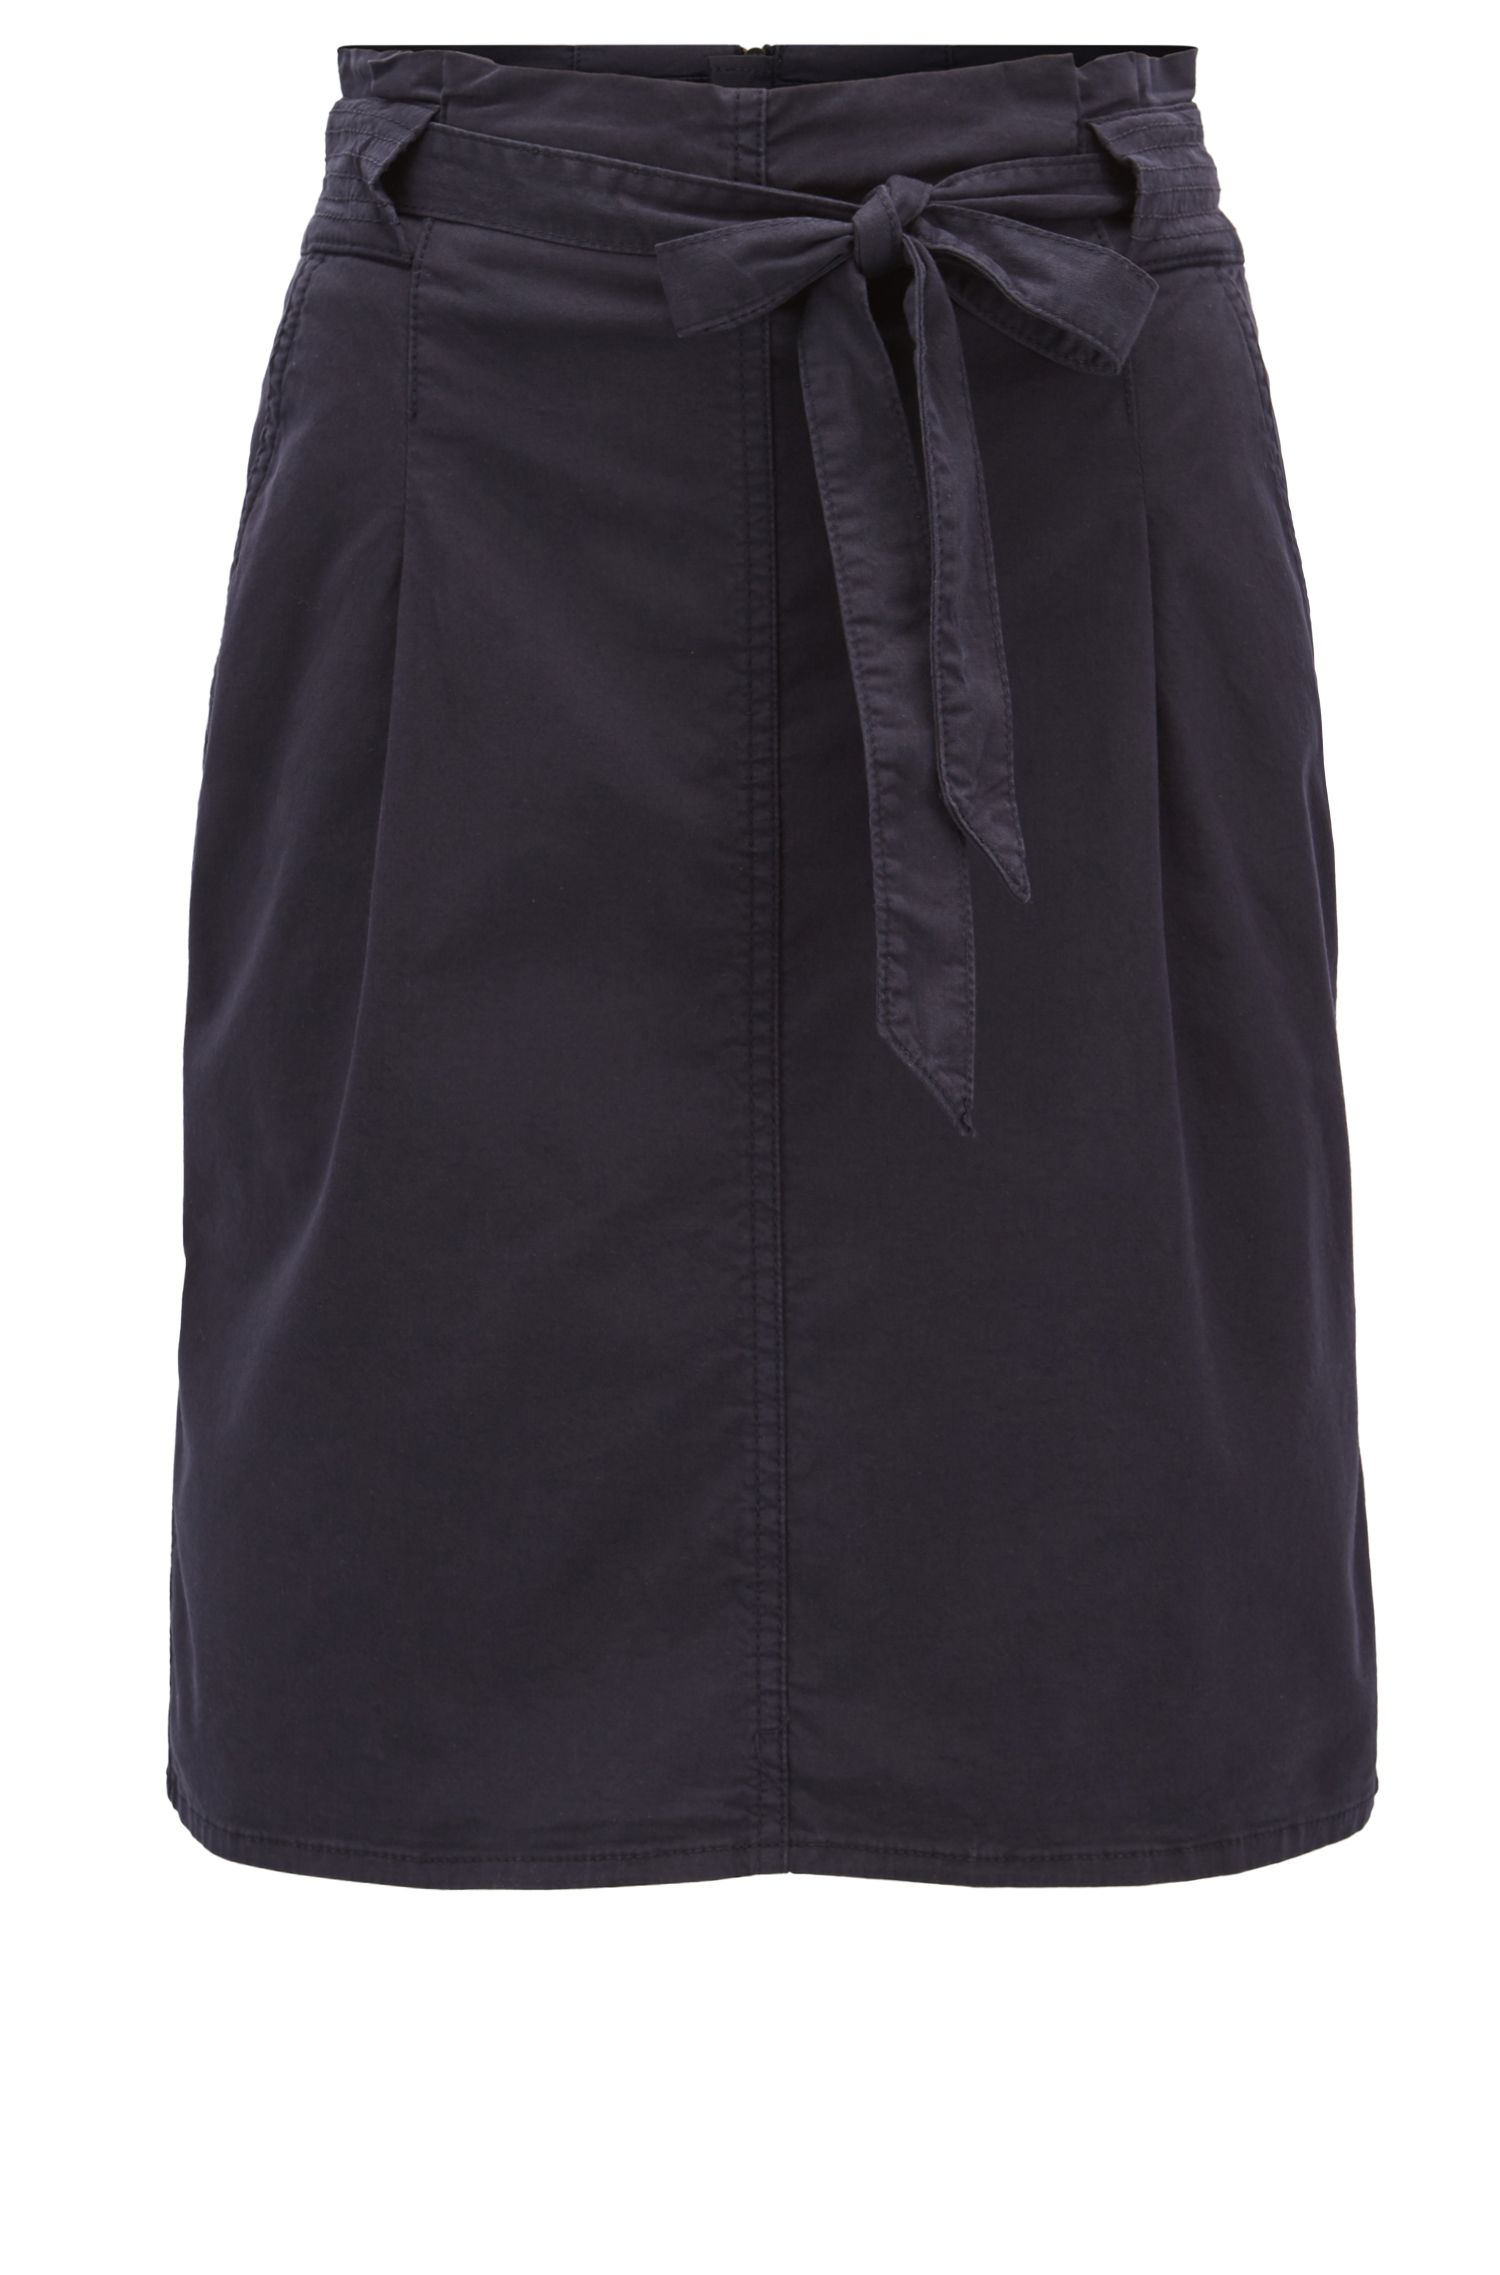 Utility-inspired pencil skirt in stretch cotton